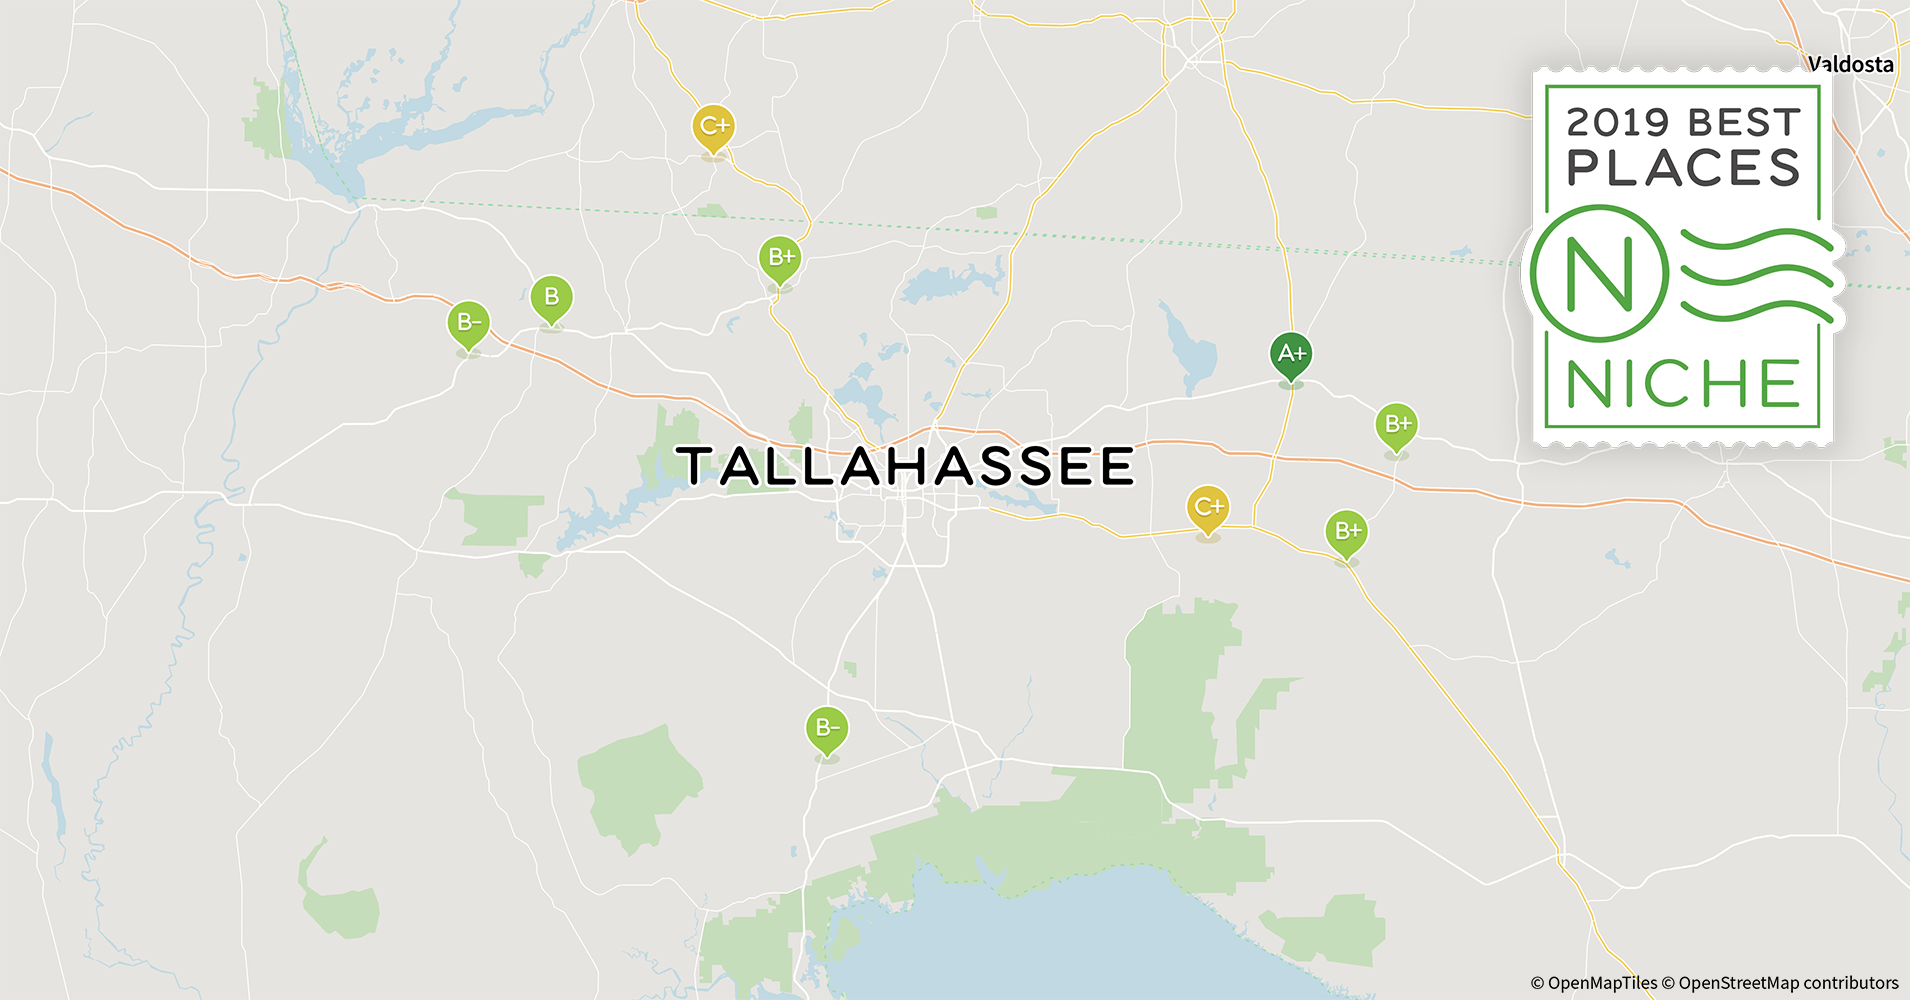 2019 Best Places to Retire in Tallahassee Area - Niche